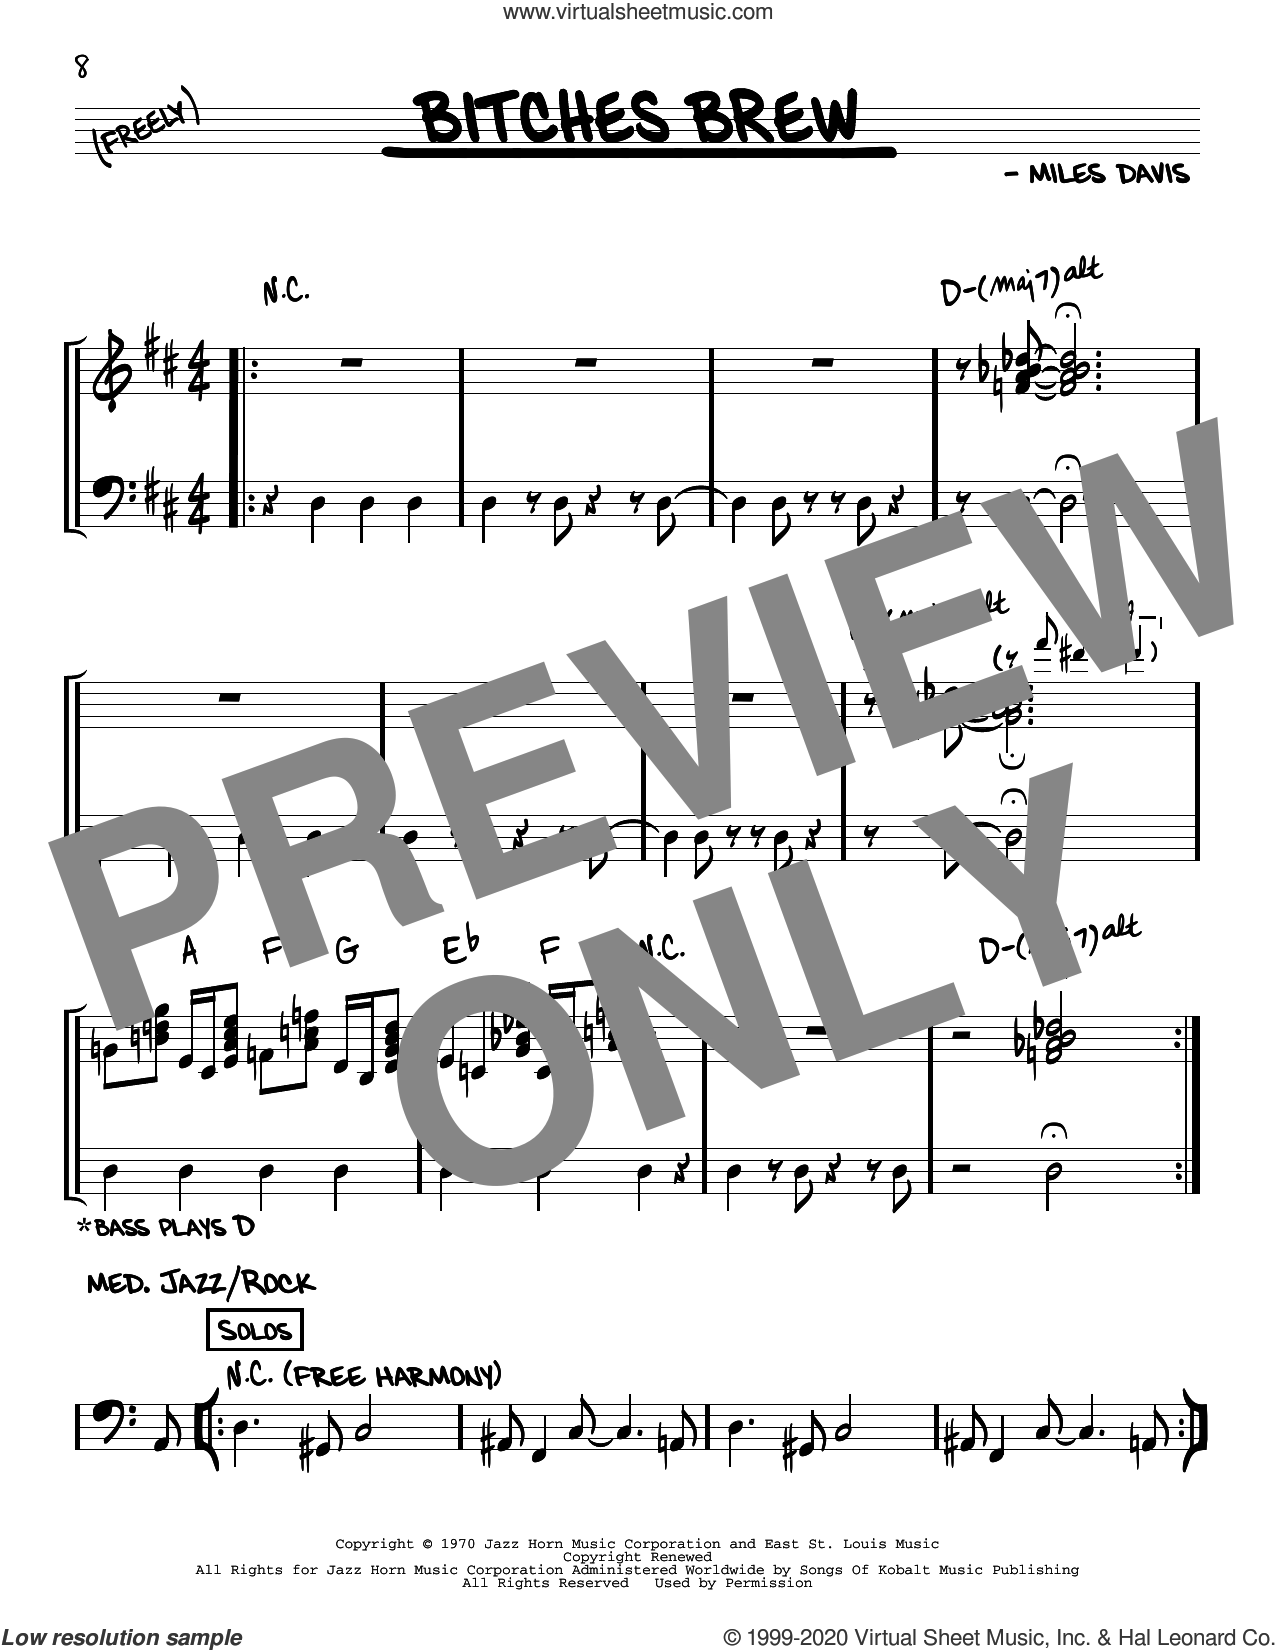 Bitches Brew sheet music for voice and other instruments (real book) by Miles Davis, intermediate skill level